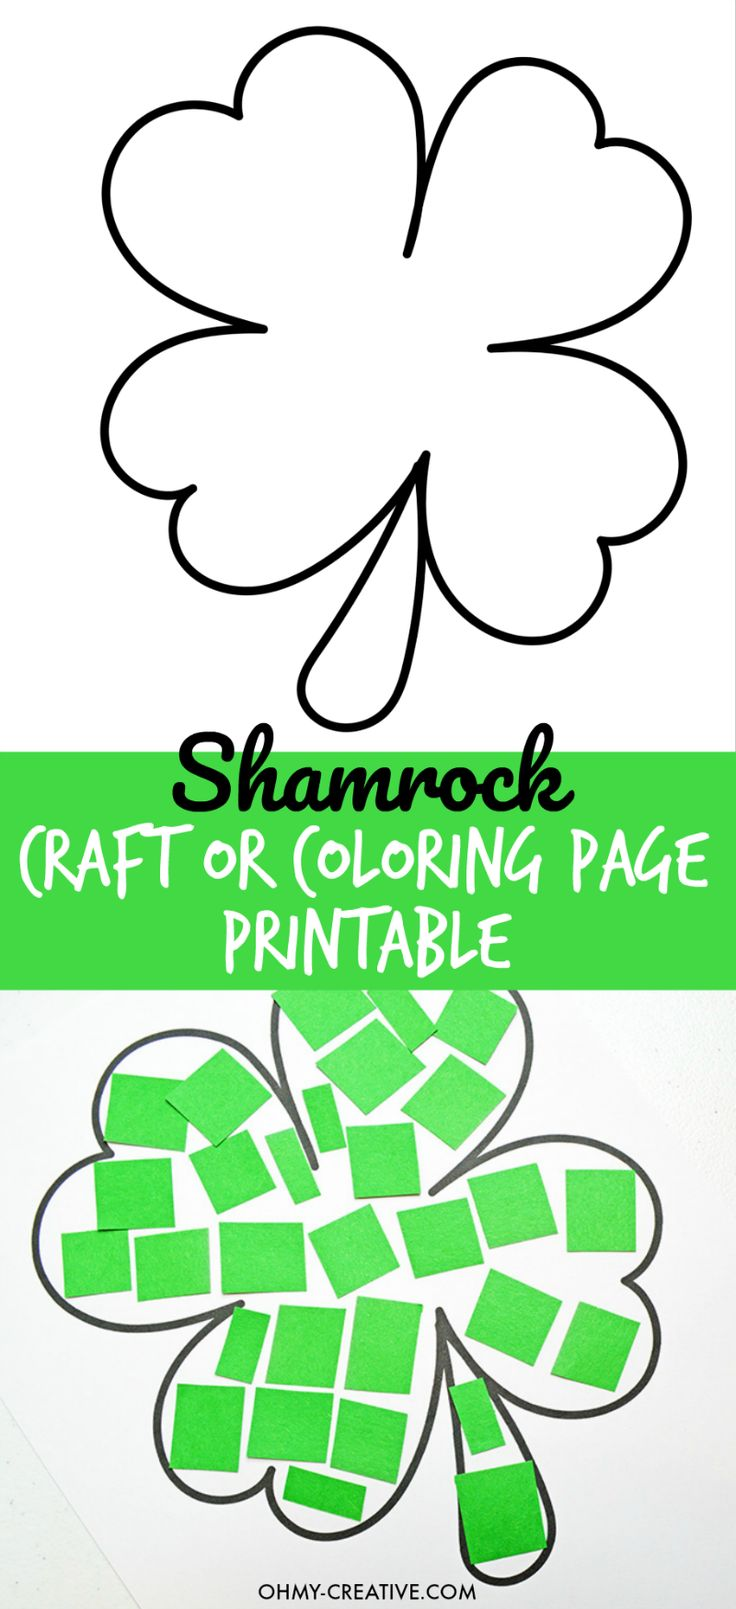 836 best Free printables images on Pinterest | Free printable, Free ...